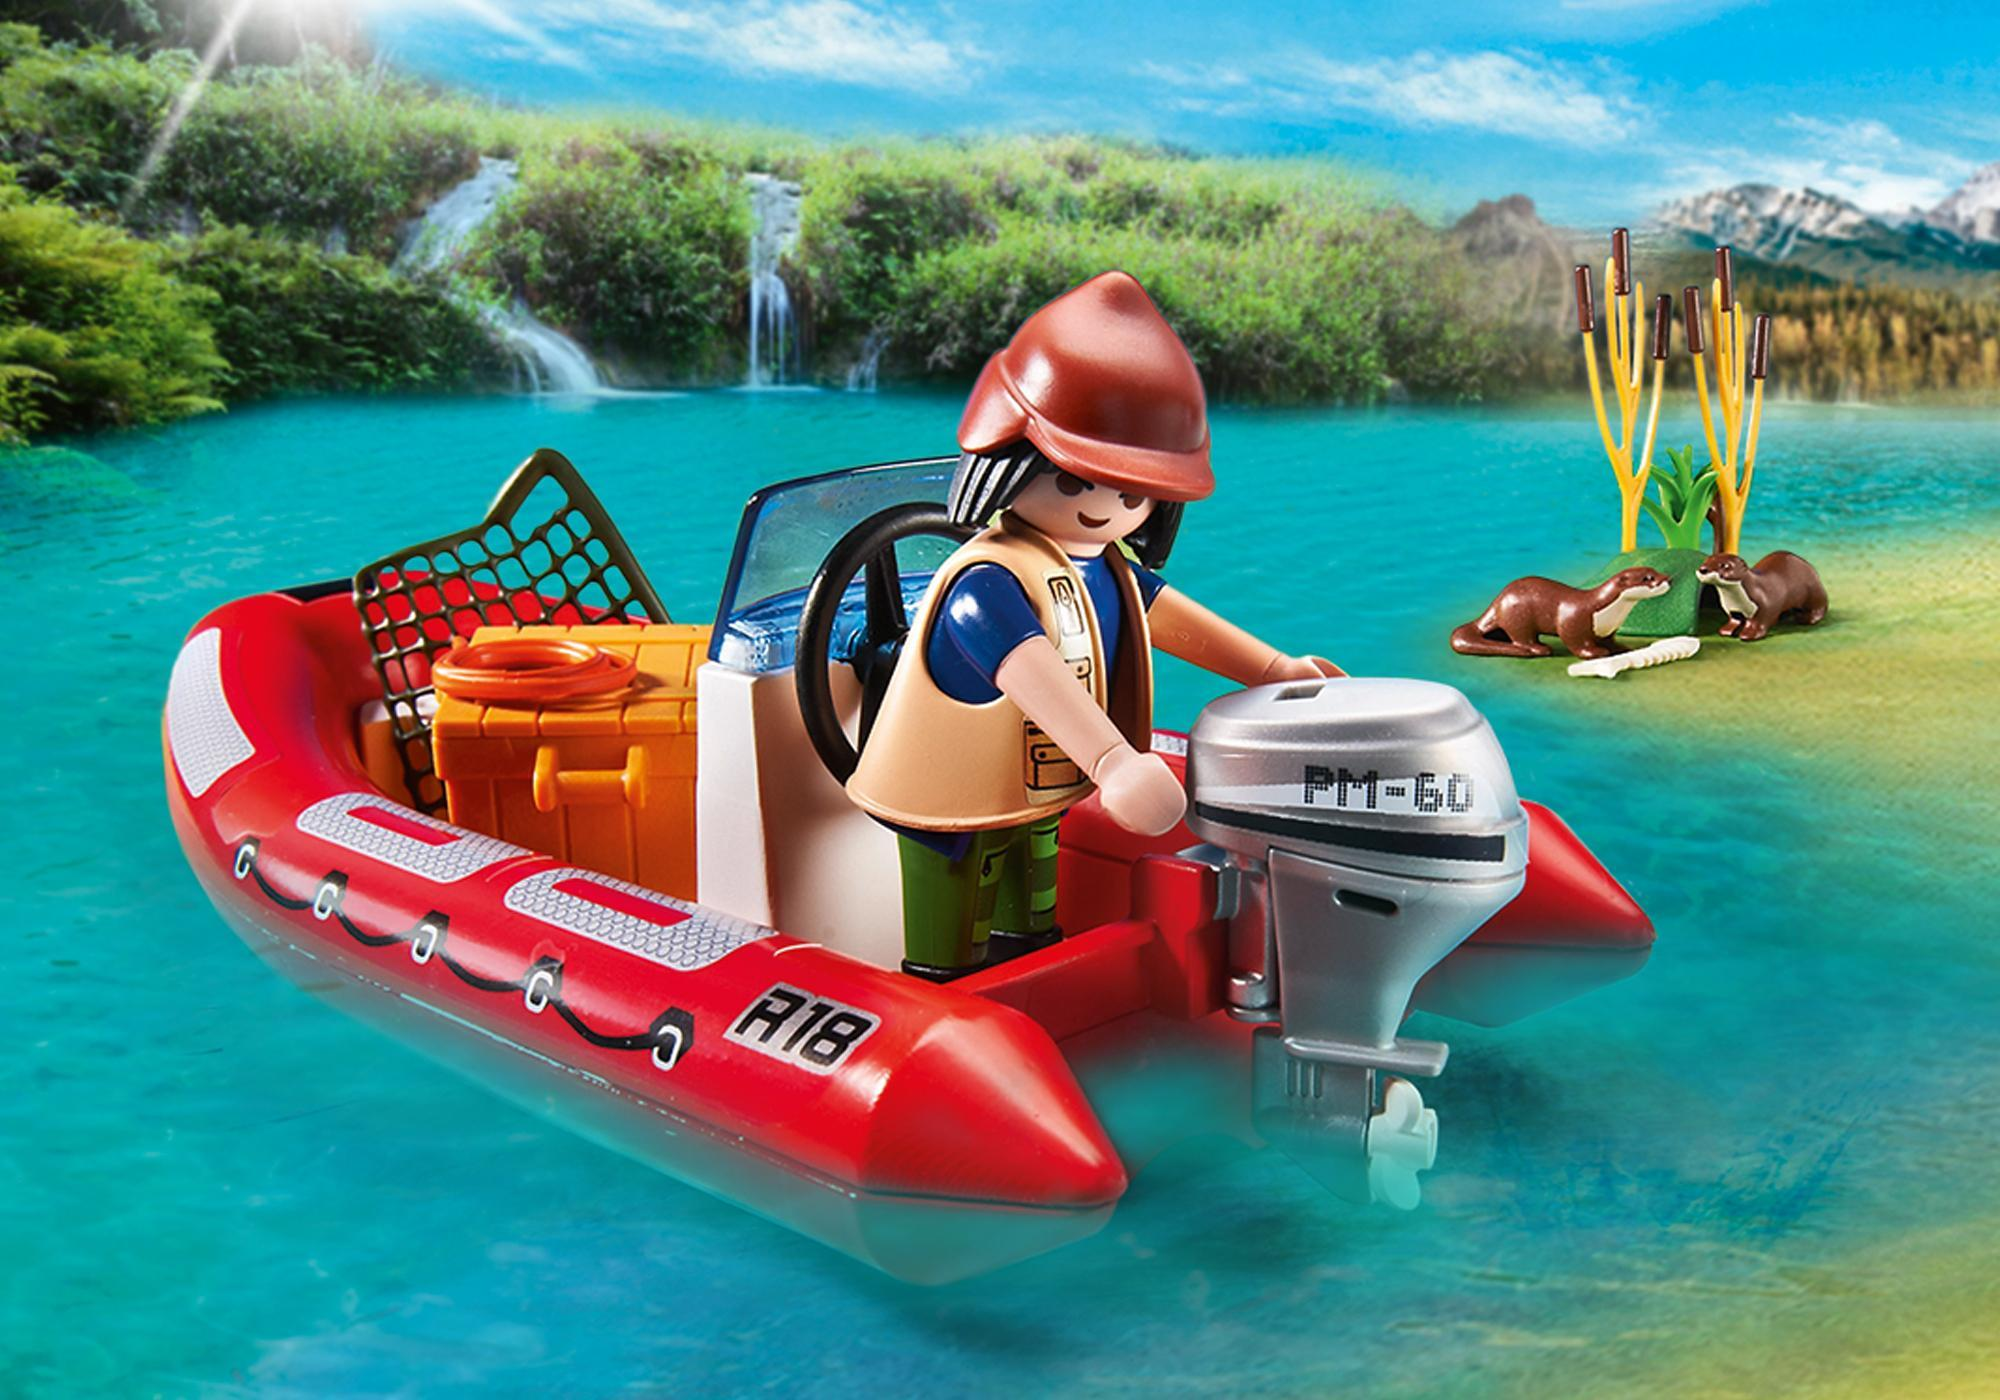 http://media.playmobil.com/i/playmobil/5559_product_extra2/Bote Hinchable con Exploradores